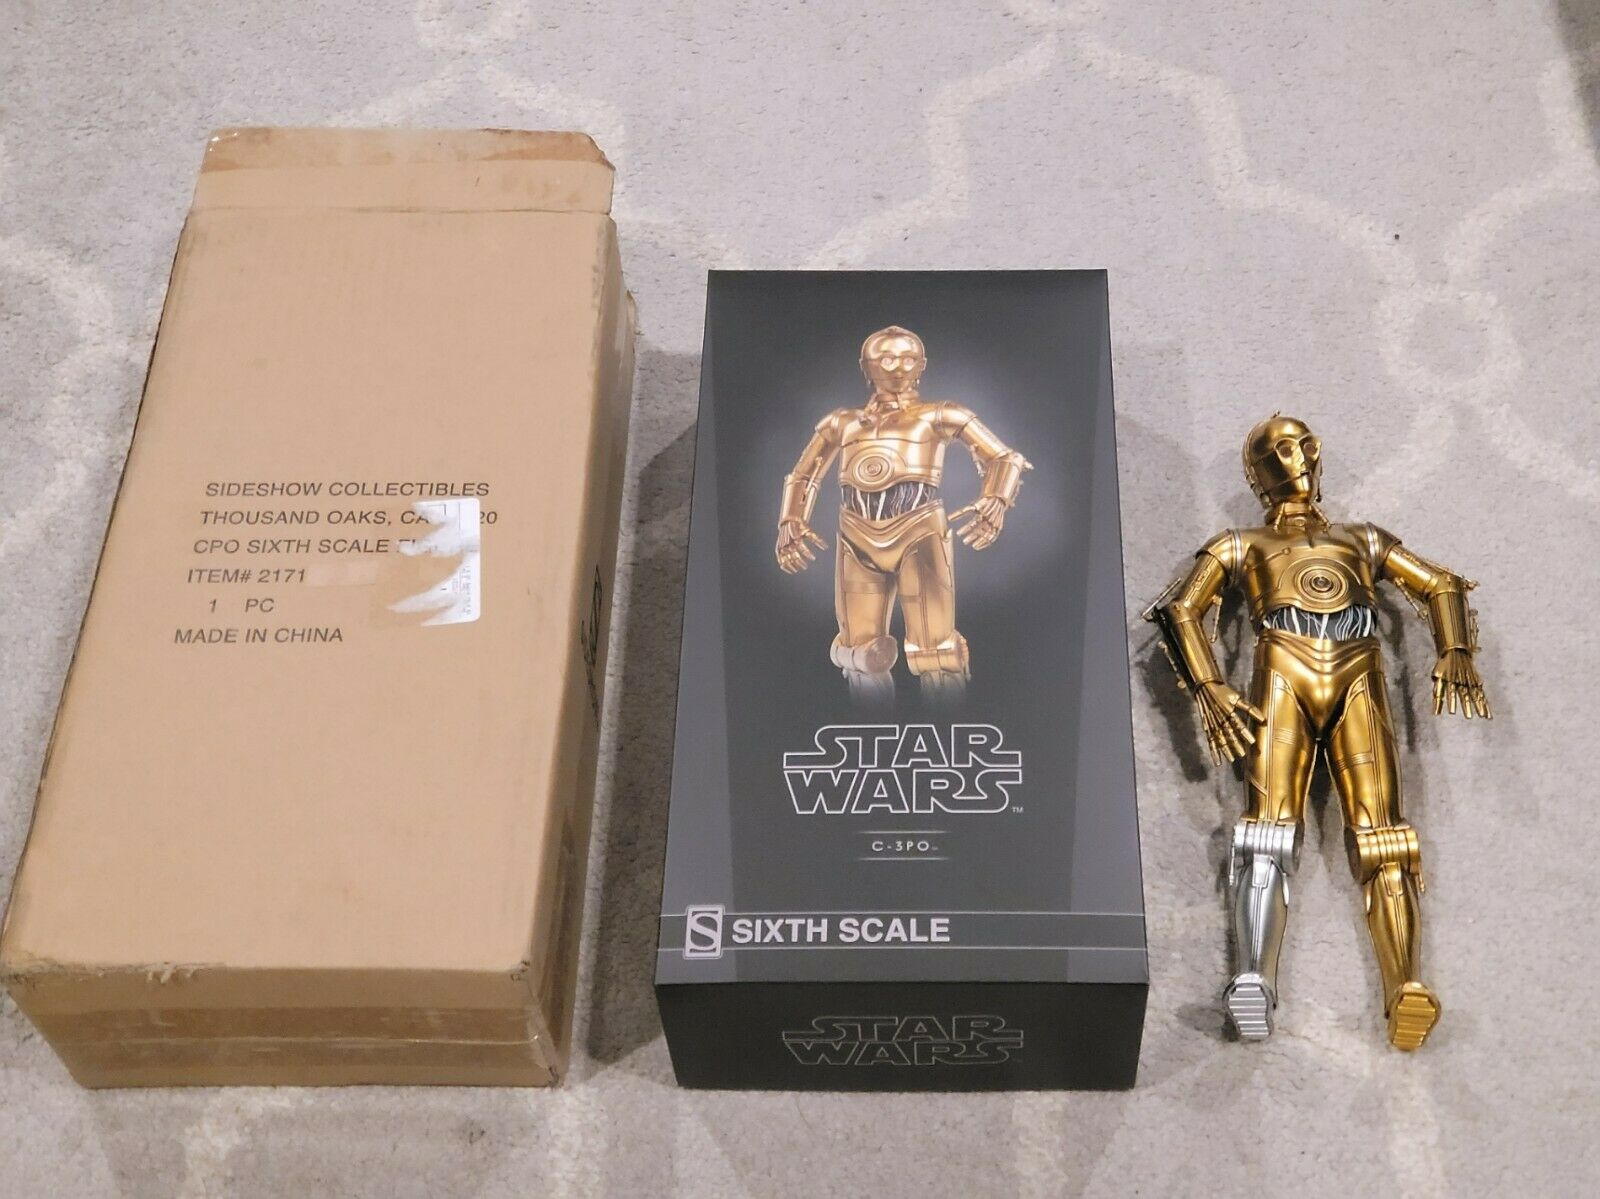 Sideshow Collectibles Star Wars C-3PO 1/6 Scale Figure in Great Shape! Lights Up on eBay thumbnail